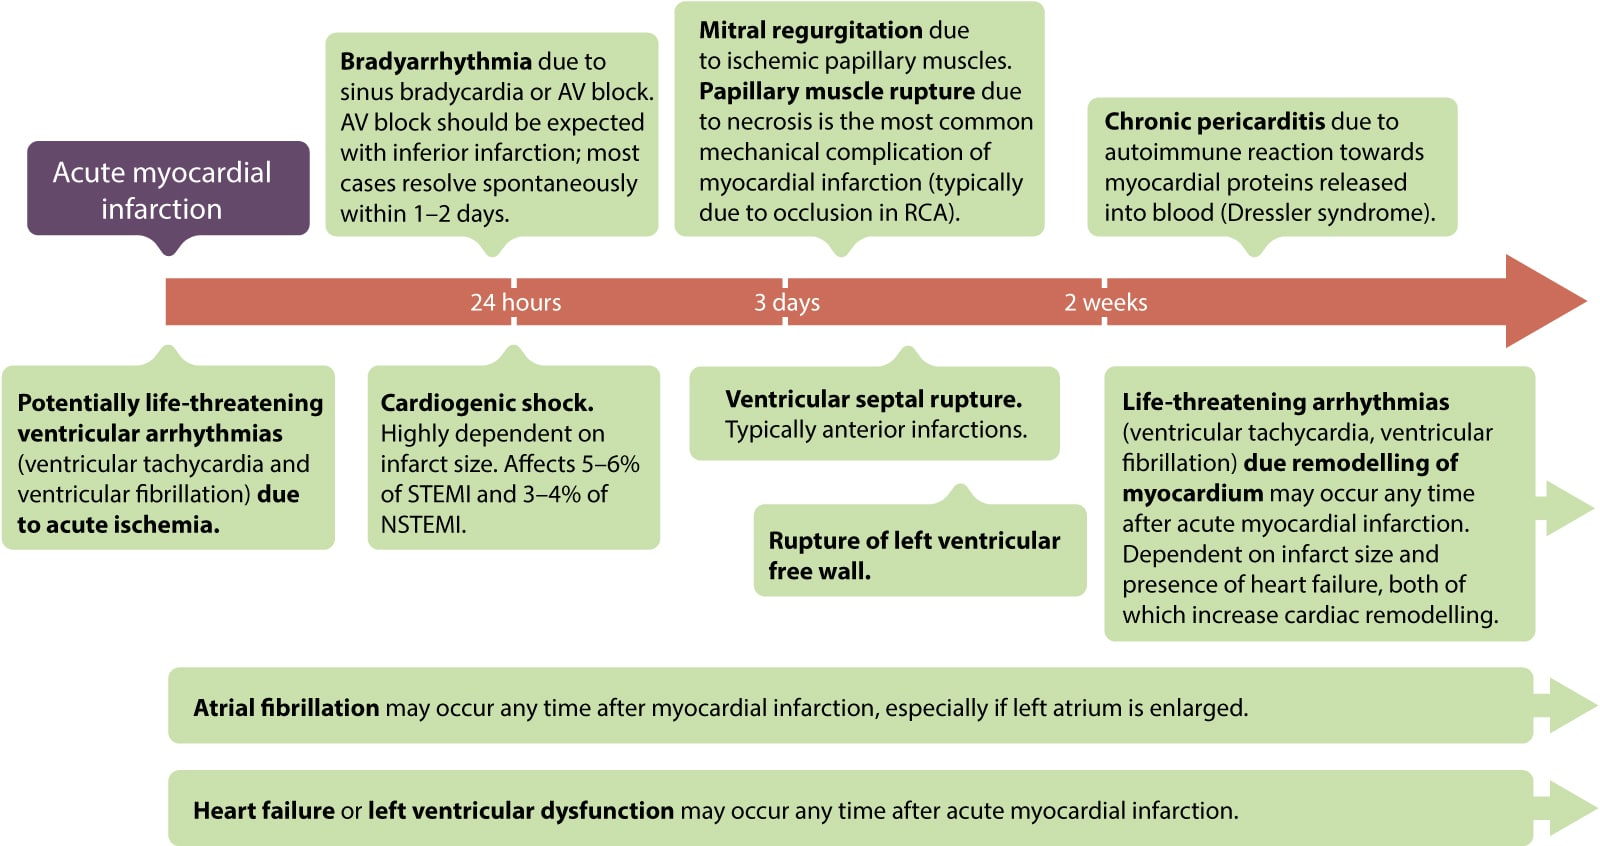 Figure 3. Acute, sub-acute and long-term complications of acute (STEMI) and myocardial infarction in general. RCA = Right Coronary Artery. Adapted from GW Reed et al, The Lancet (2017).